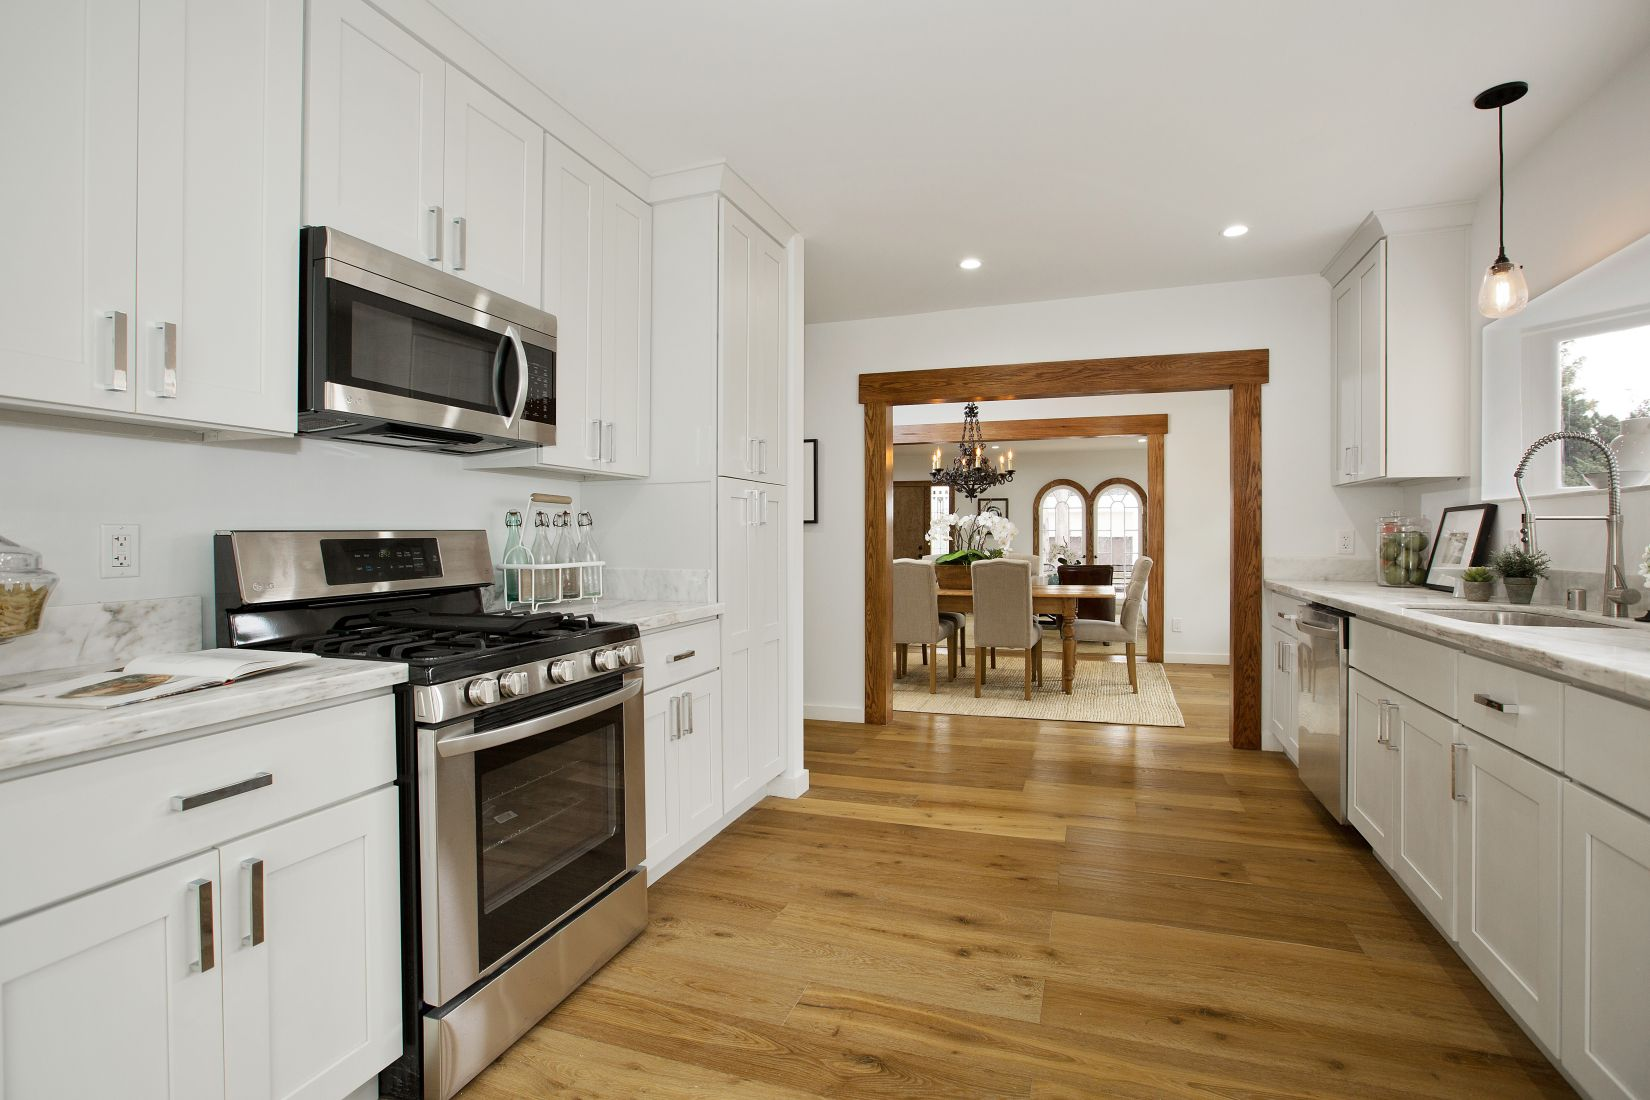 7kitchenWaterlooSilverLake.jpg